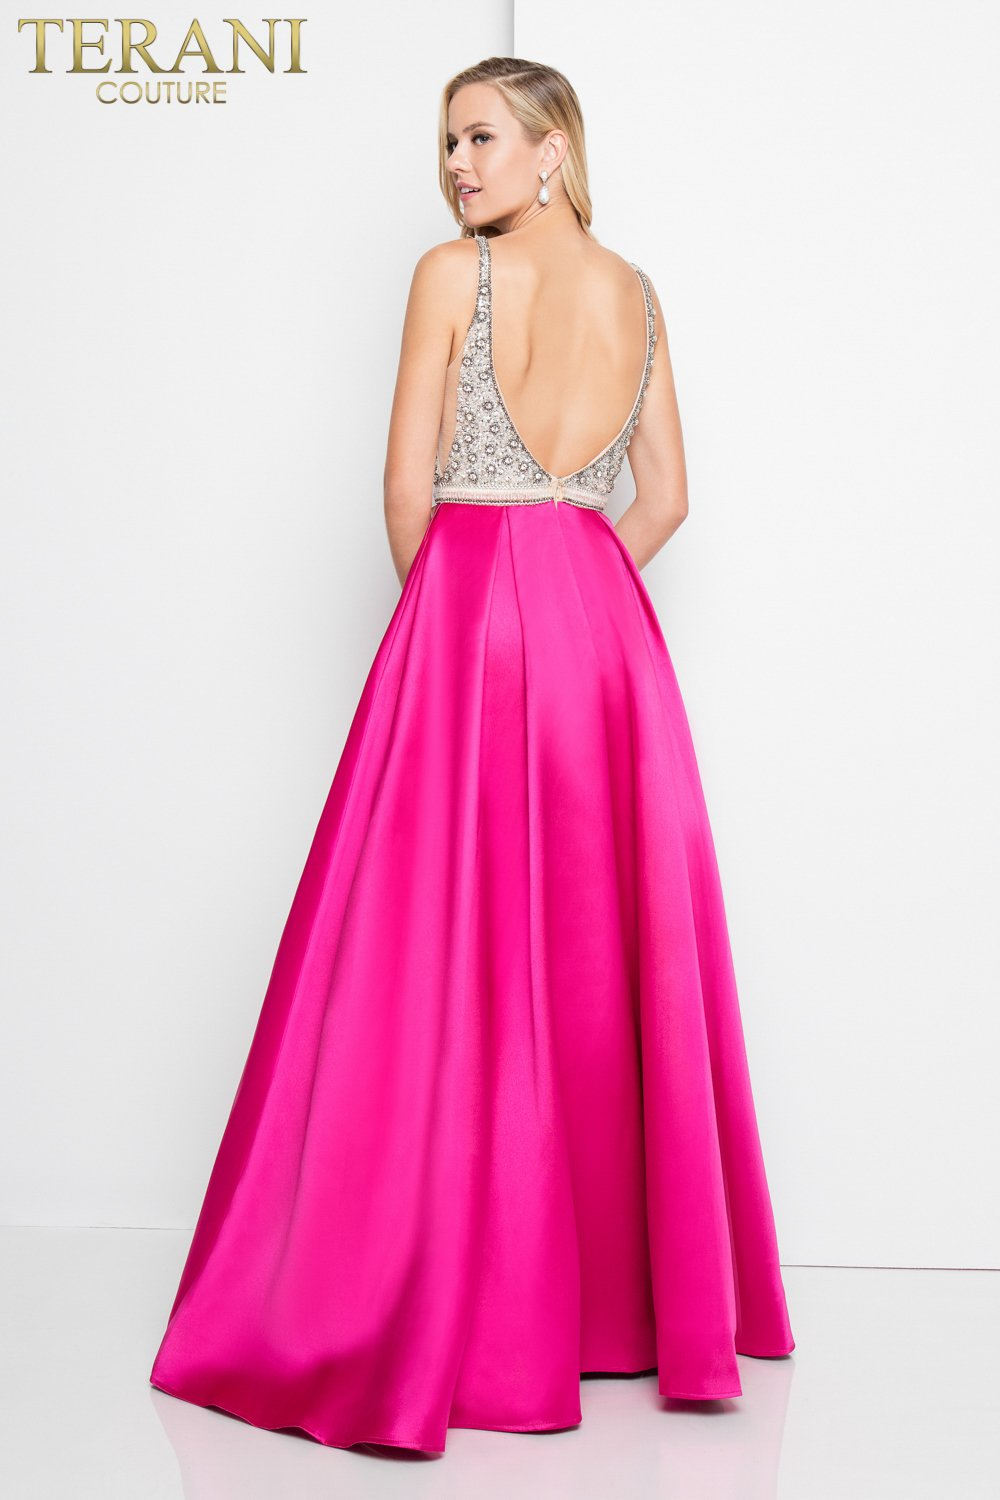 Magnificent Next Day Delivery Prom Dresses Illustration - Wedding ...